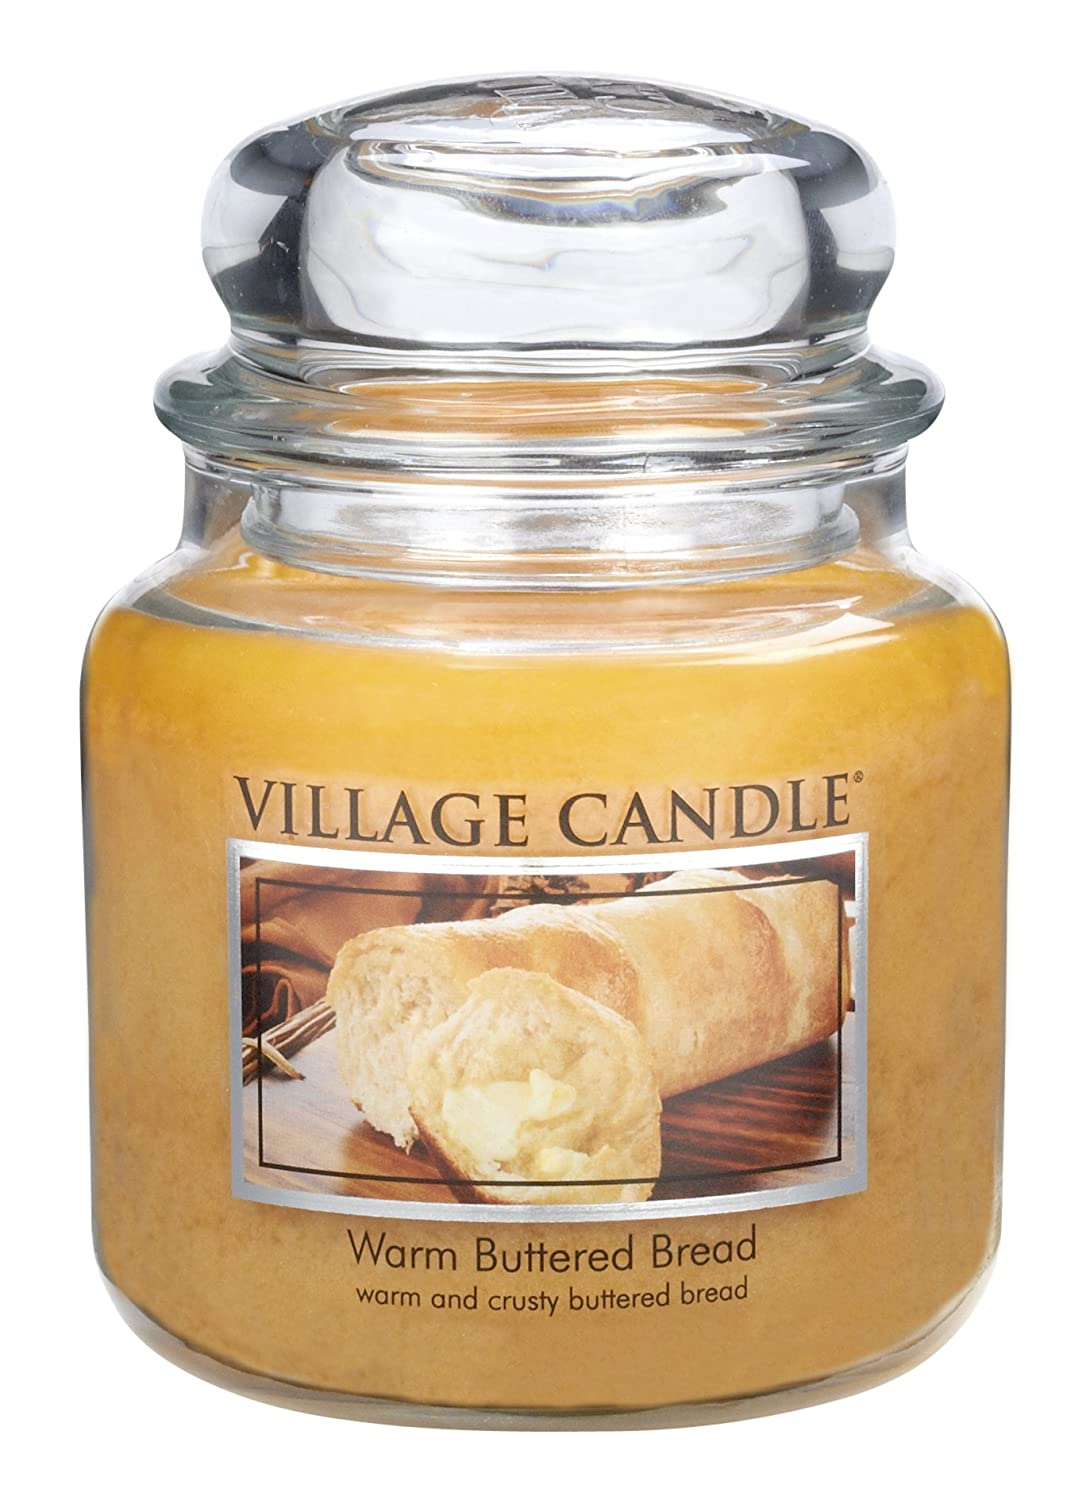 Village Candle Warm Buttered Bread 16 oz Glass Jar Scented Candle, Medium